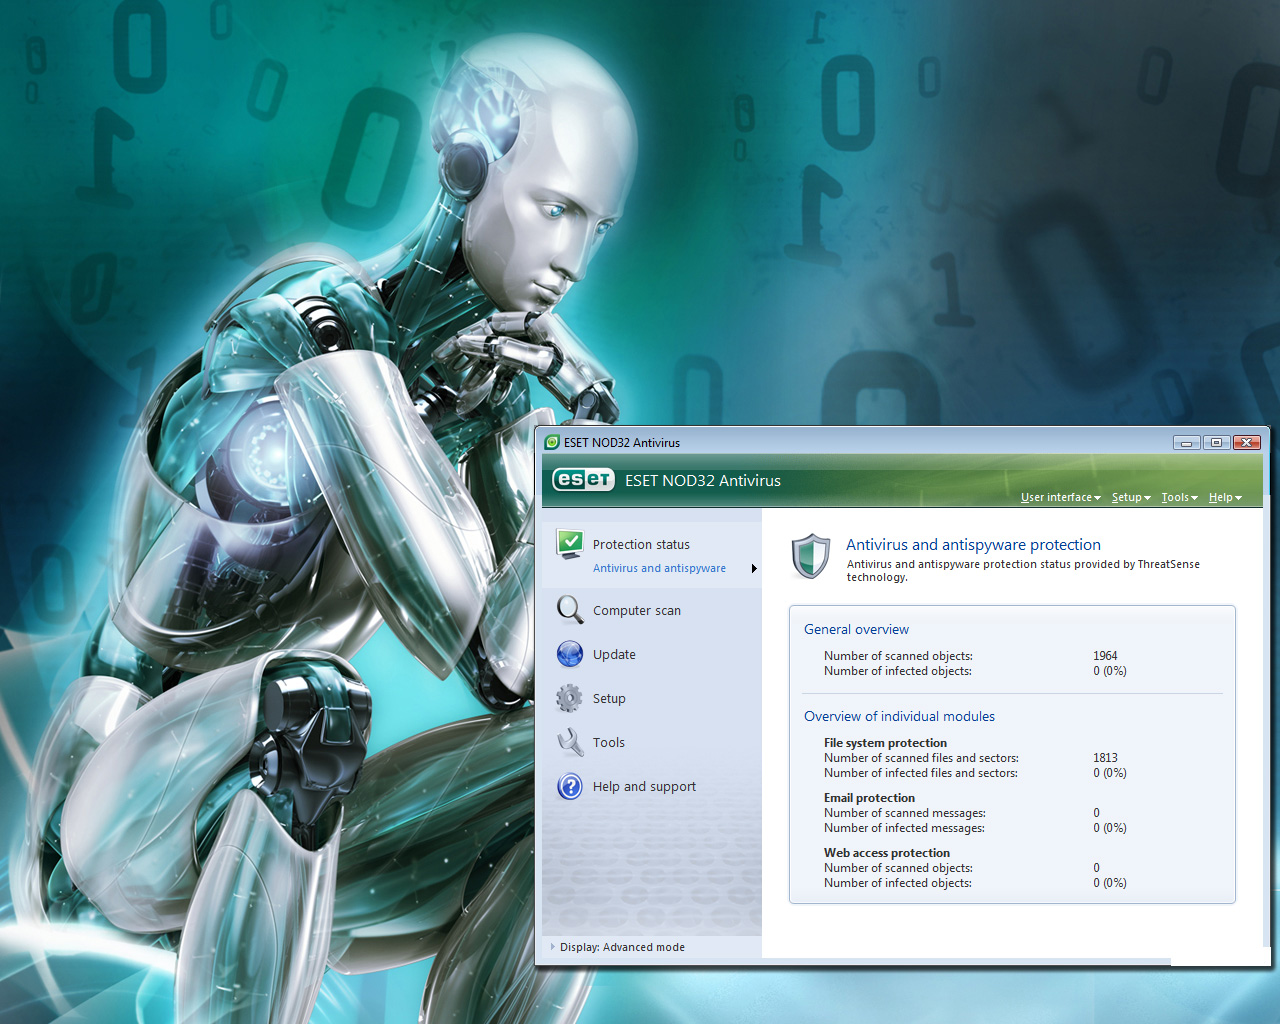 Eset Nod 32 Username & Password